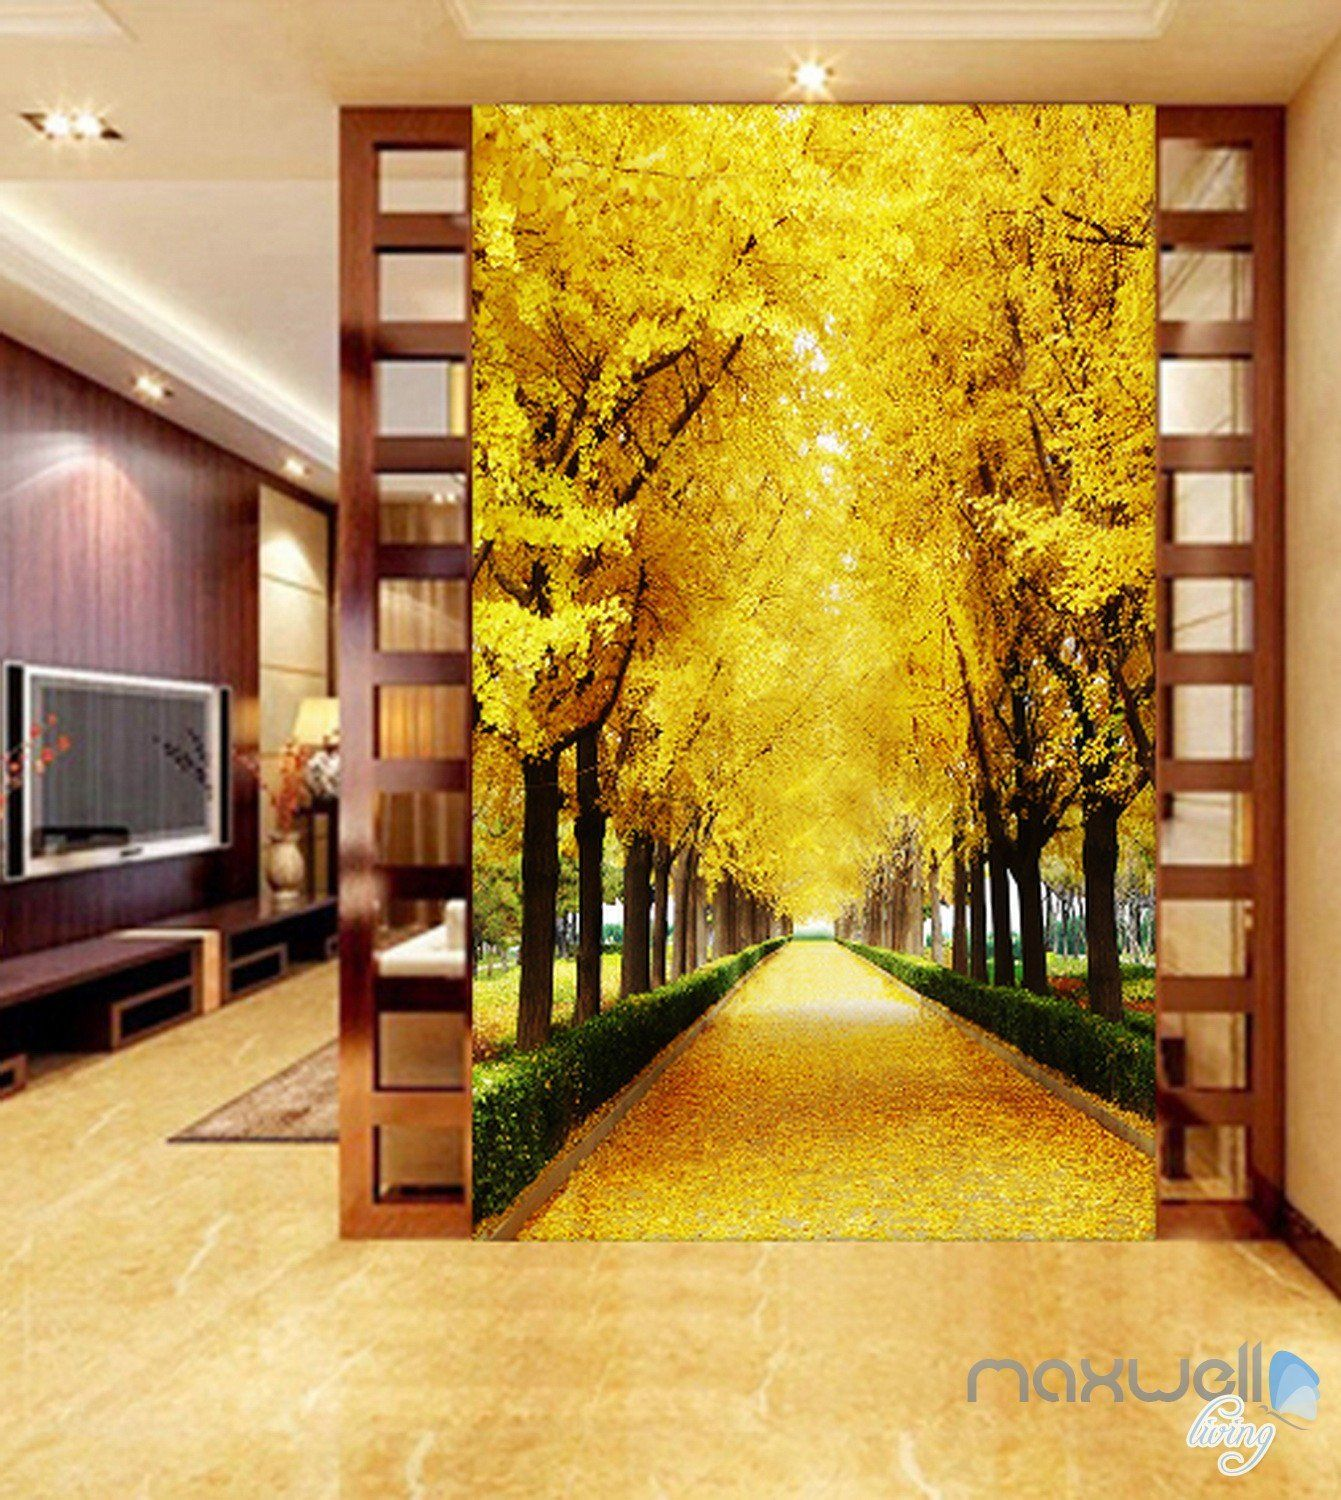 3D Autumn Tree Yellow Leaves Corridor Entrance Wall Mural Decals ...